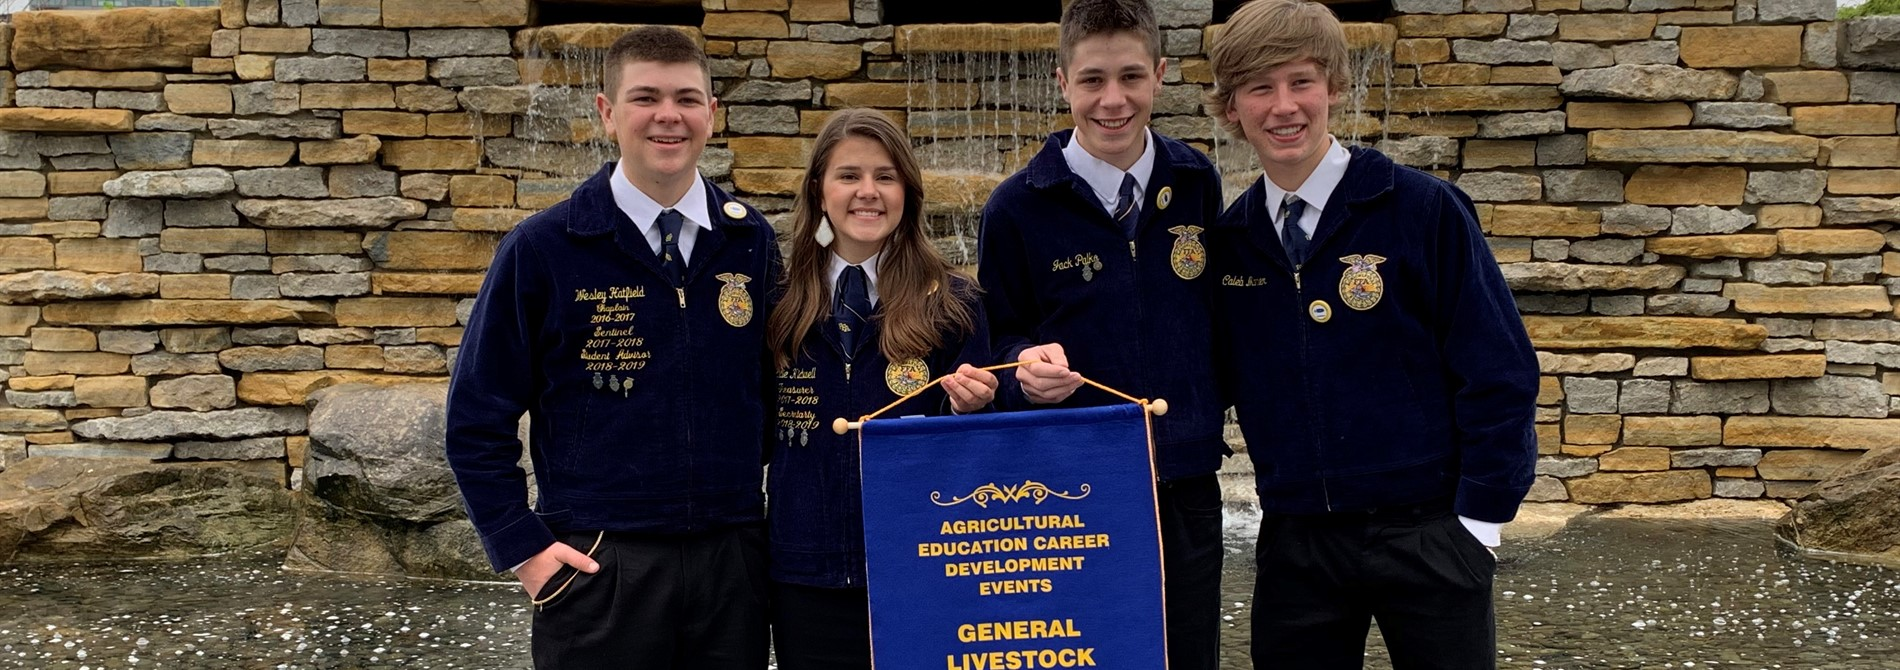 FFA General Livestock Judging Team received their 5th place State Banner!